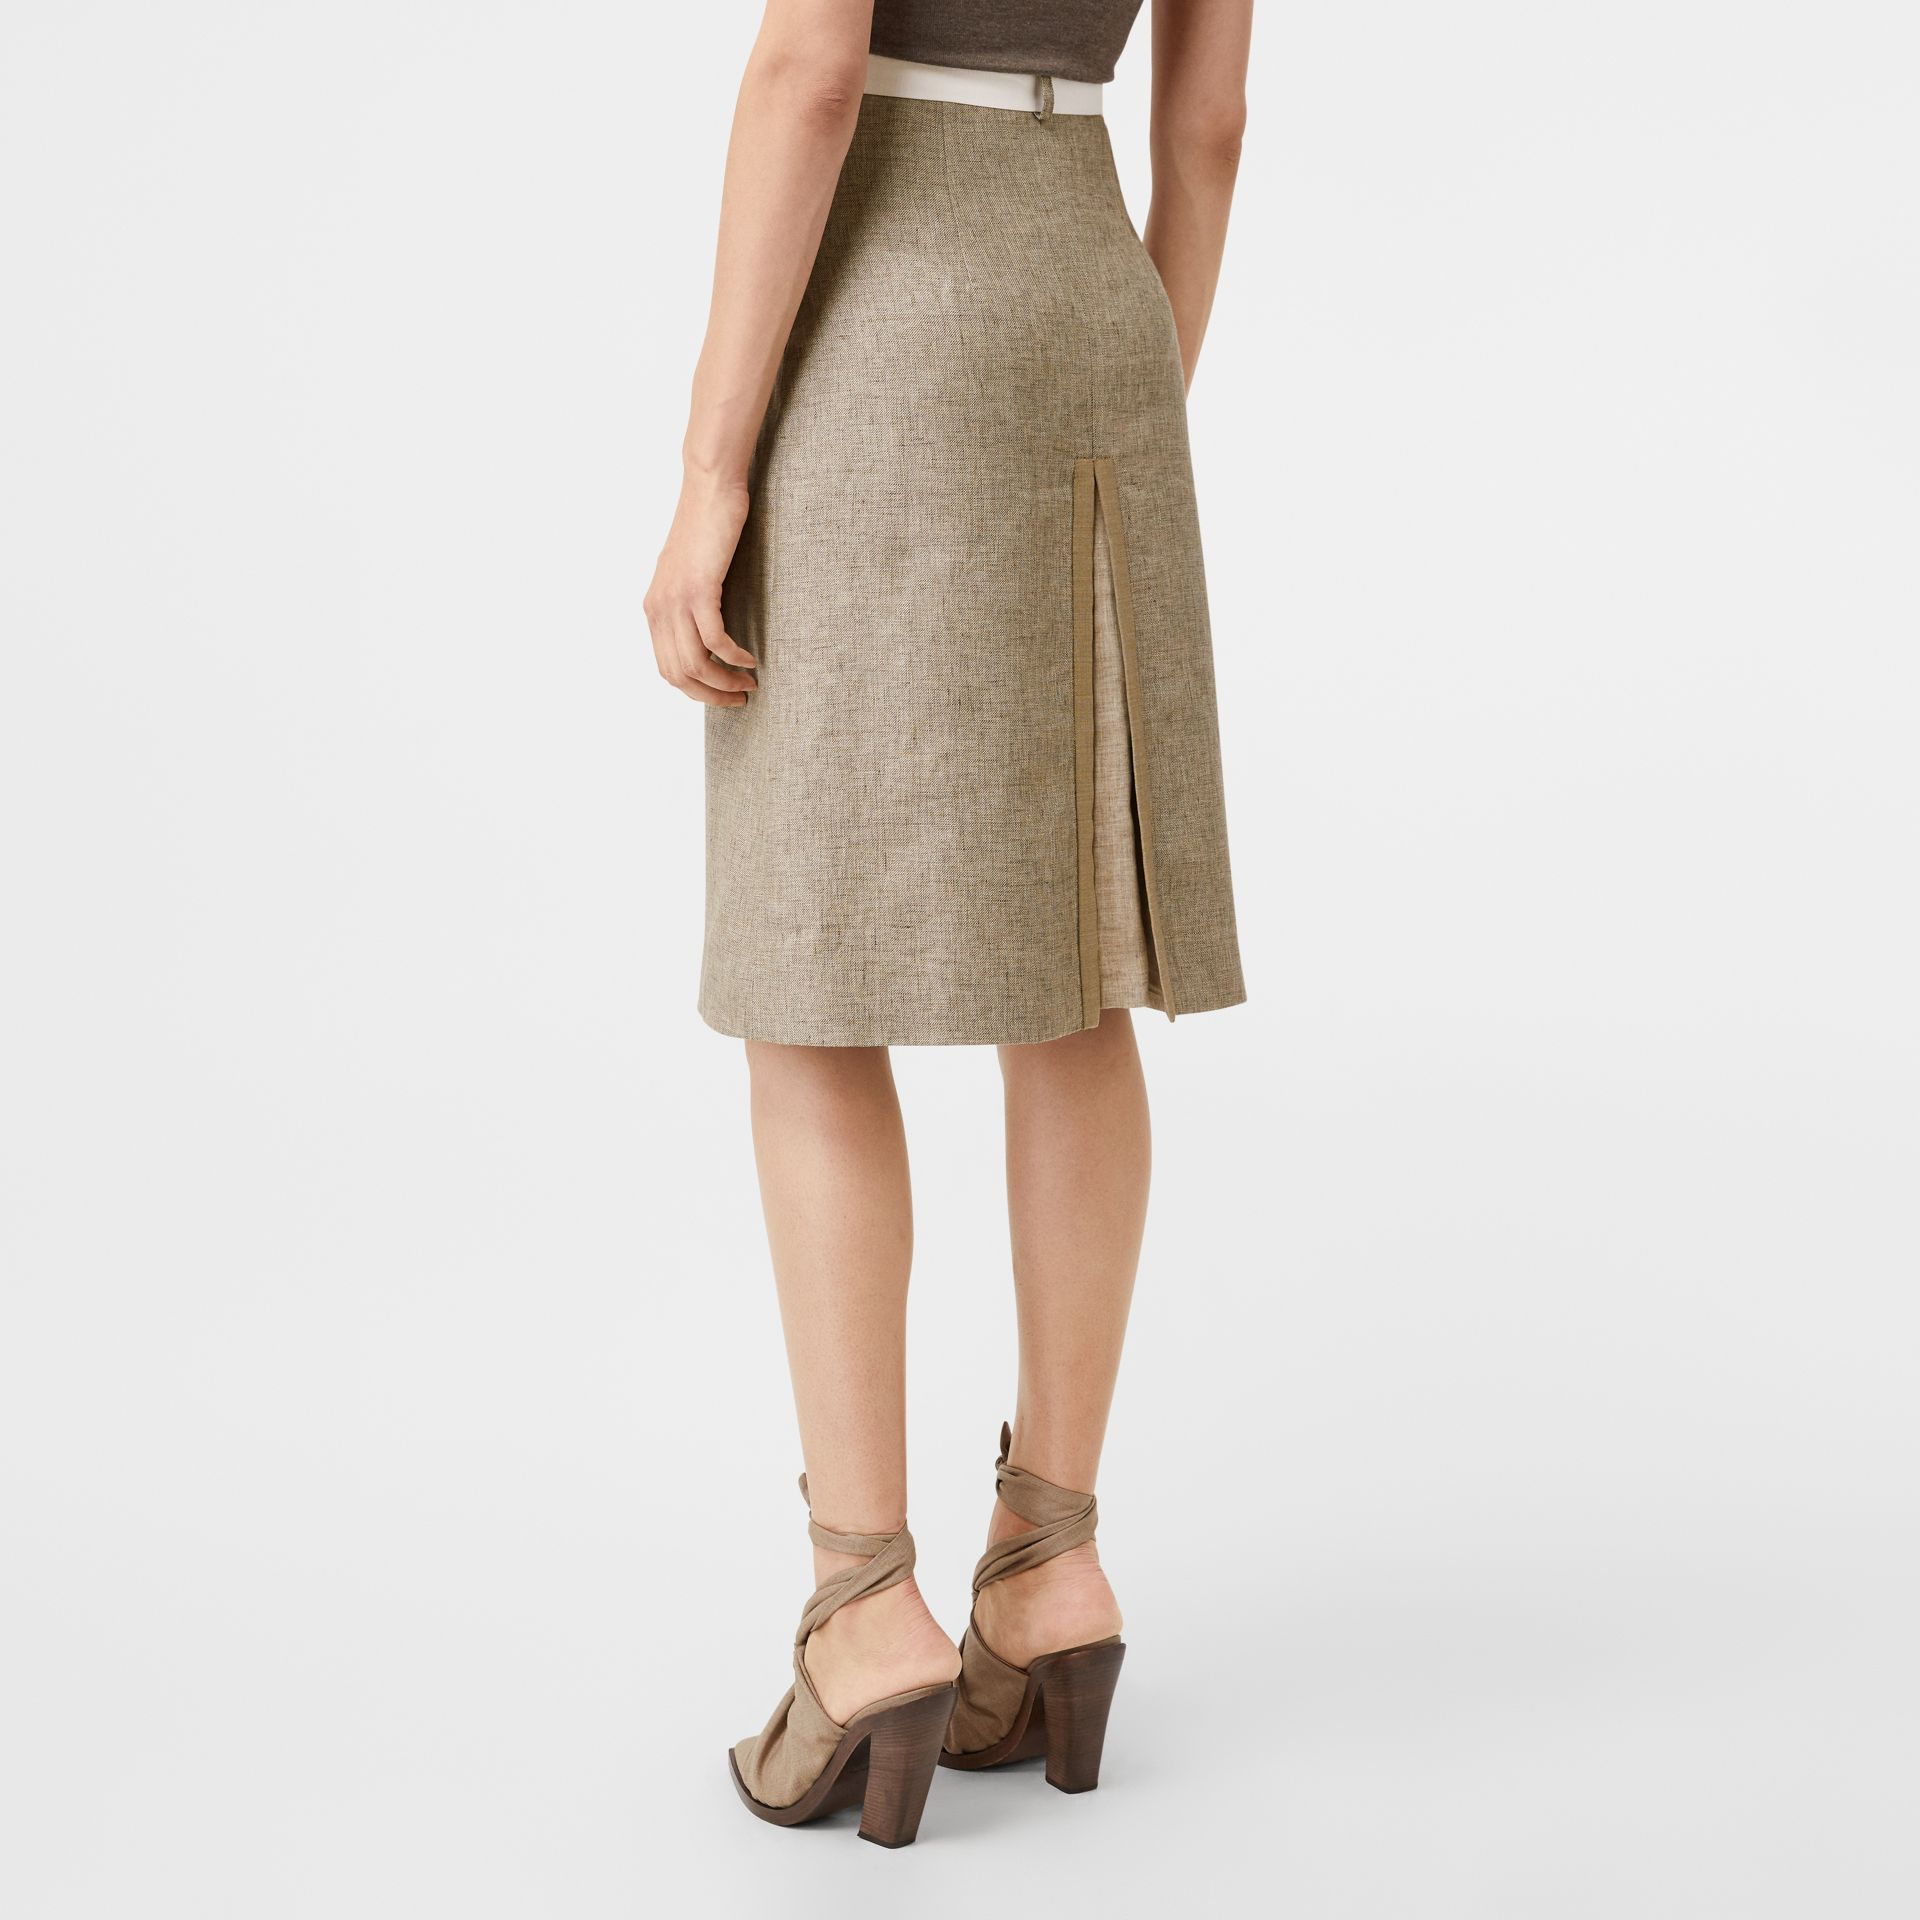 Box-pleat Detail Wool Cashmere A-line Skirt in Pecan Melange - Women | Burberry Canada - gallery image 2